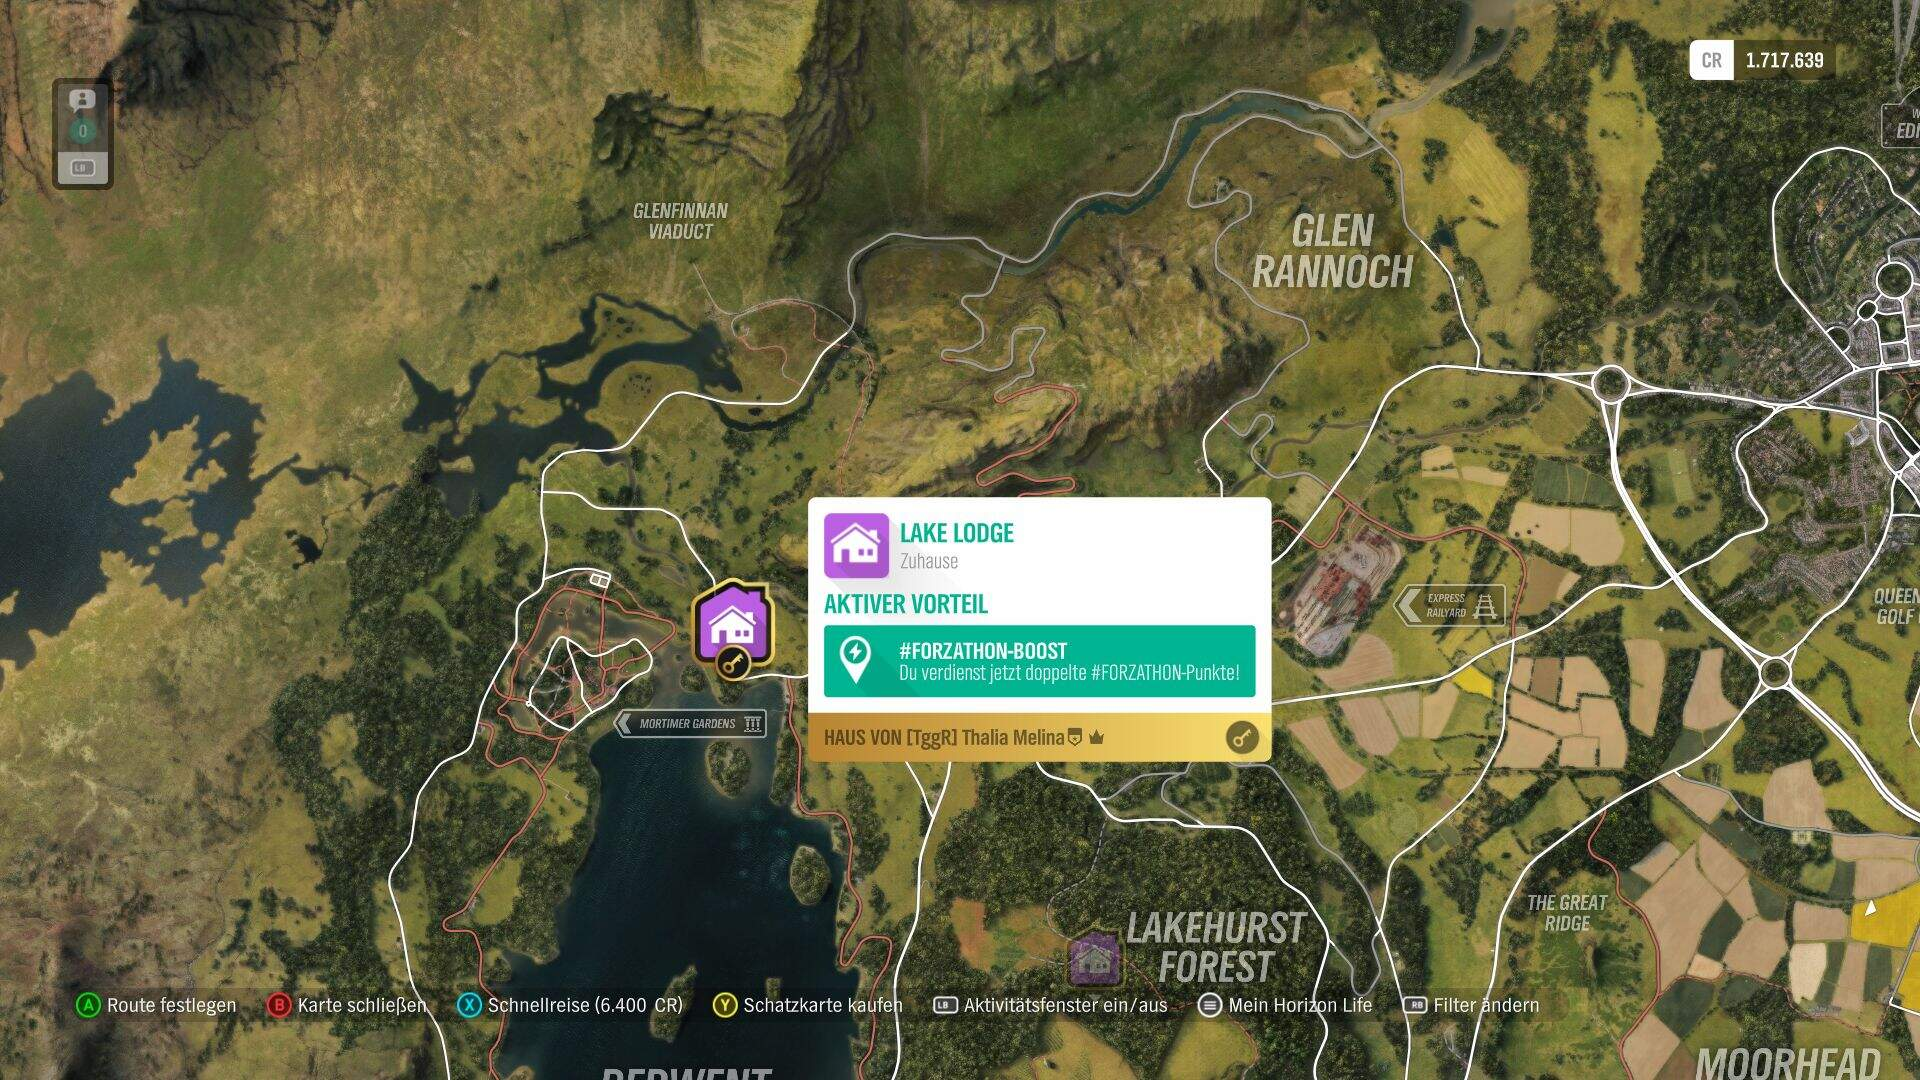 Forza Horizon 4 Lake Lodge Location